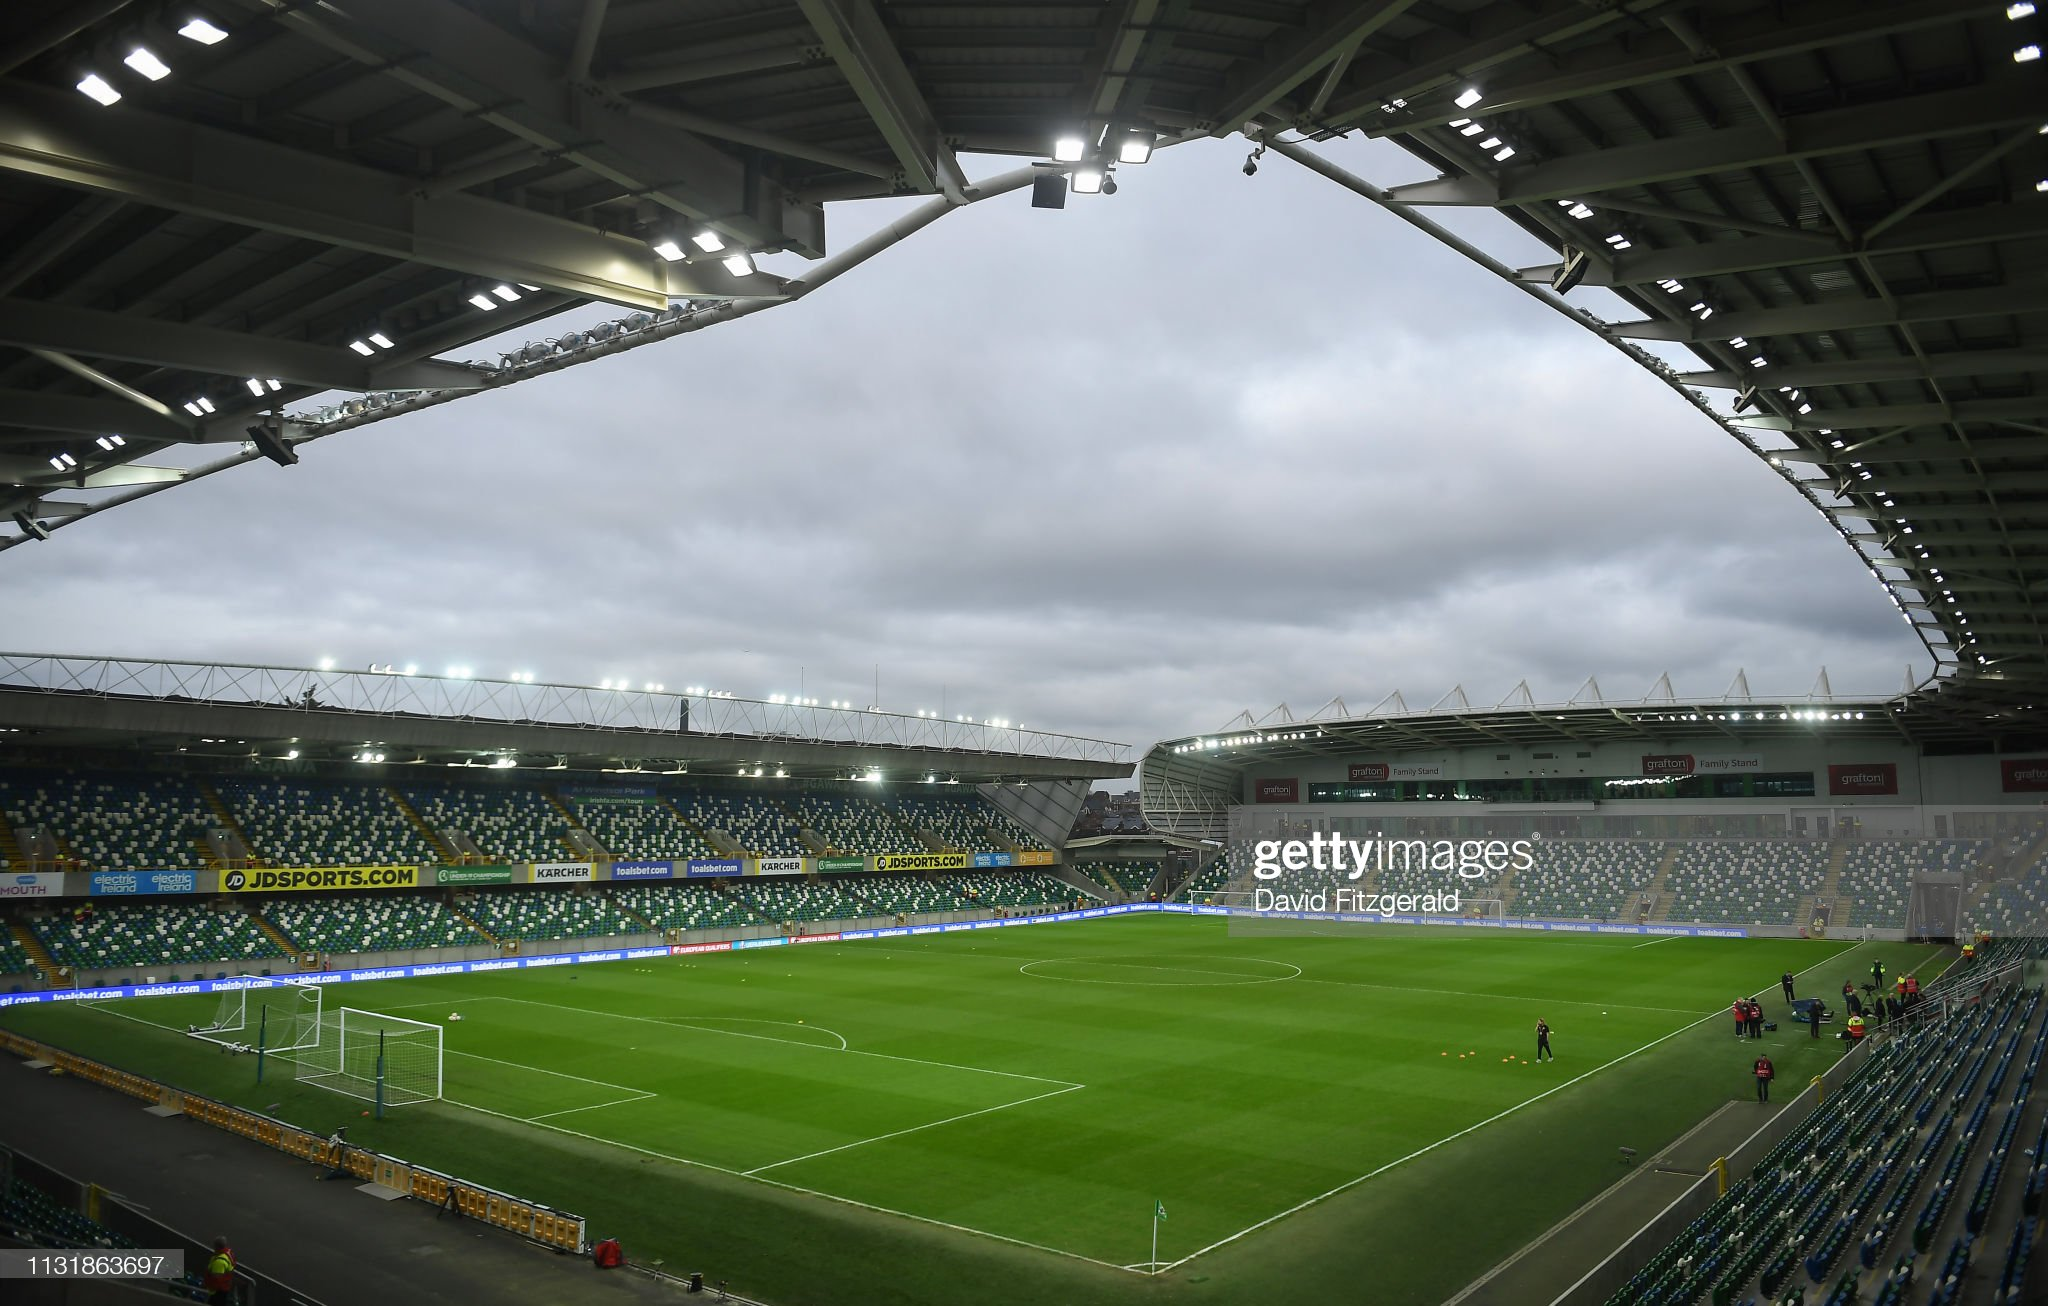 Northern Ireland vs Slovakia Preview, prediction and odds